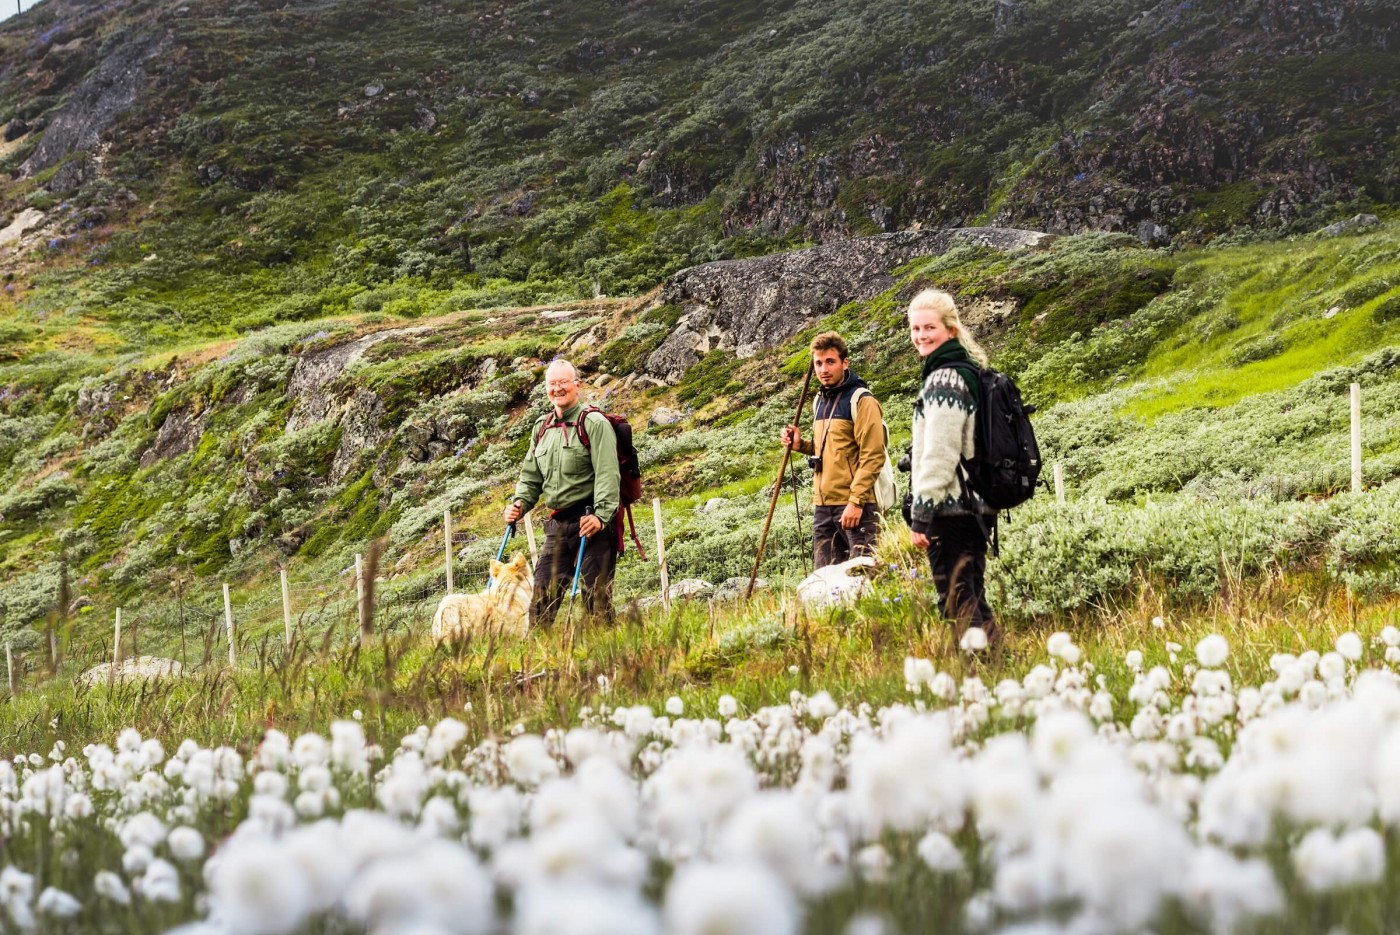 Three hikers hiking amongst blossoming flowers and green mountains in summer.